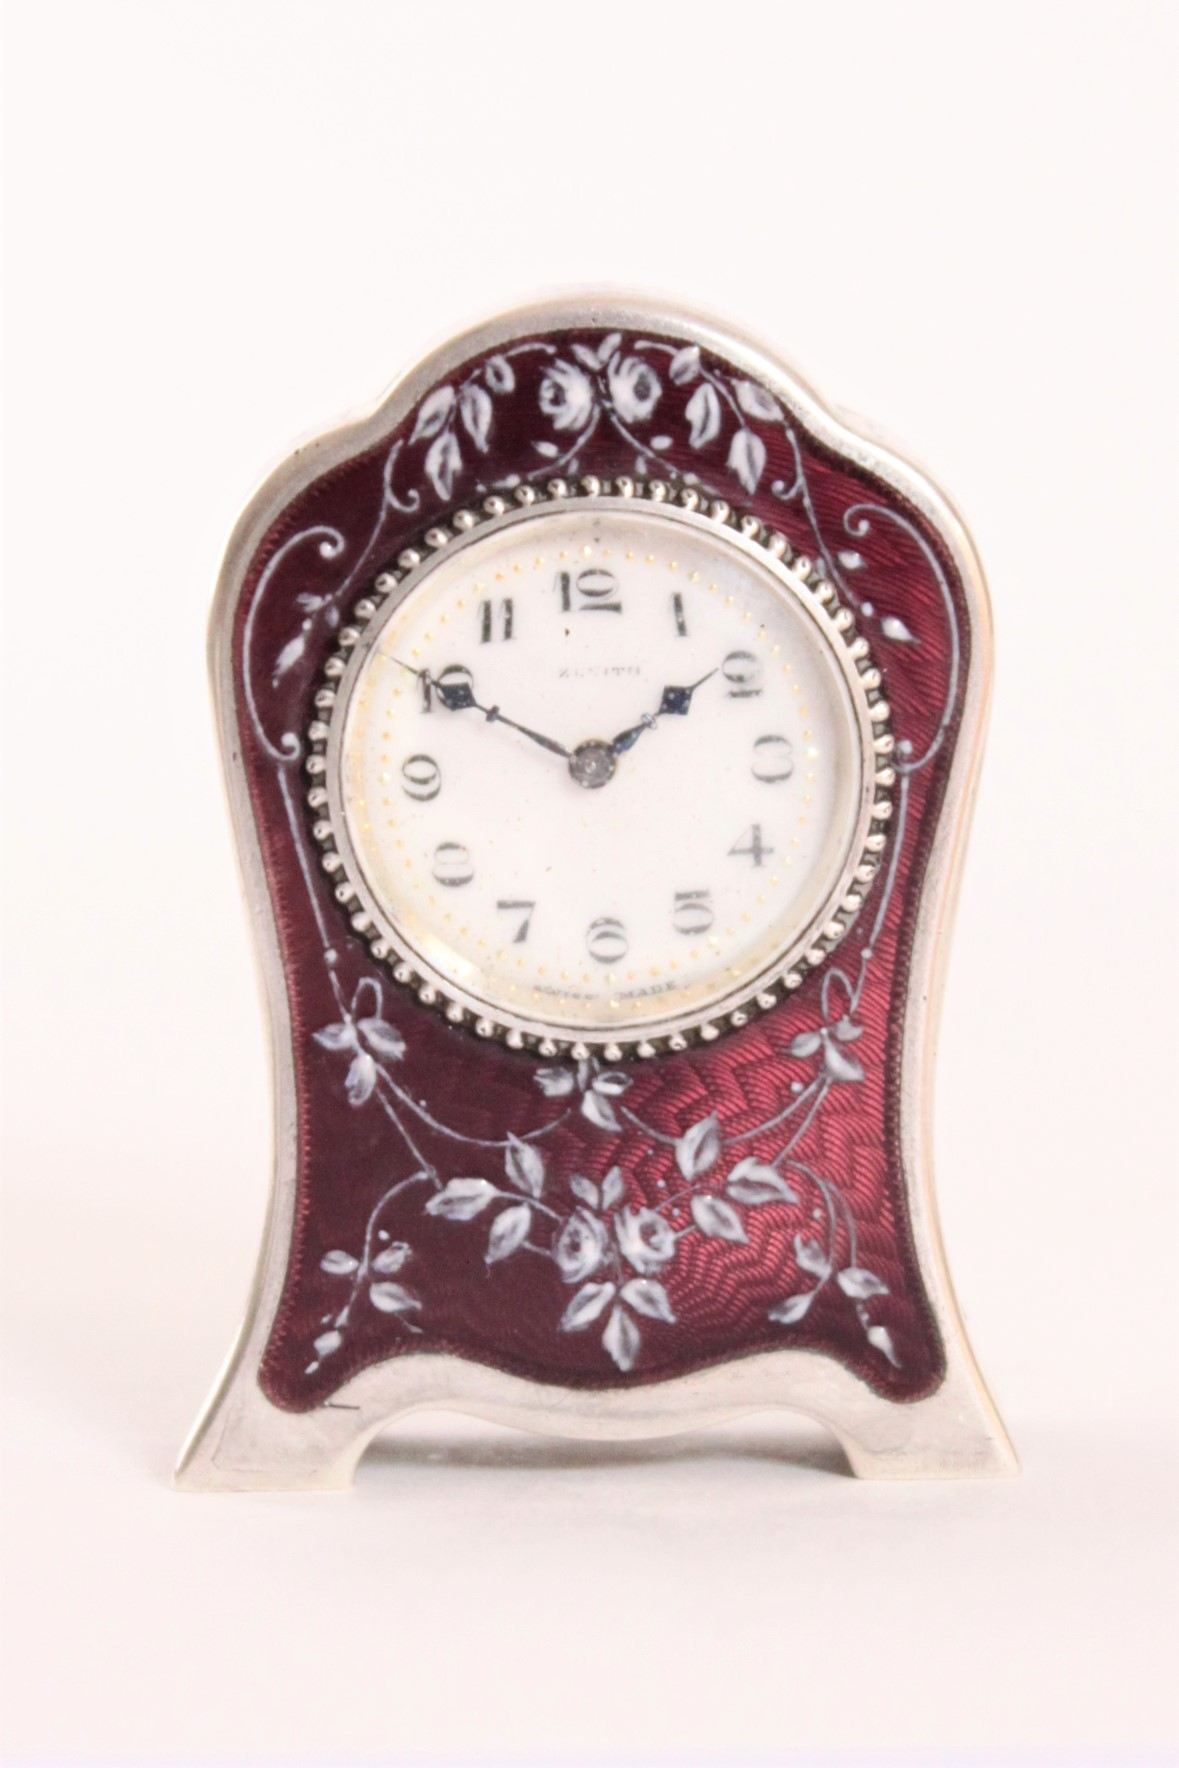 Swiss-guilloche-translucent-enamel-miniature-travel-antique-clock-zenith-